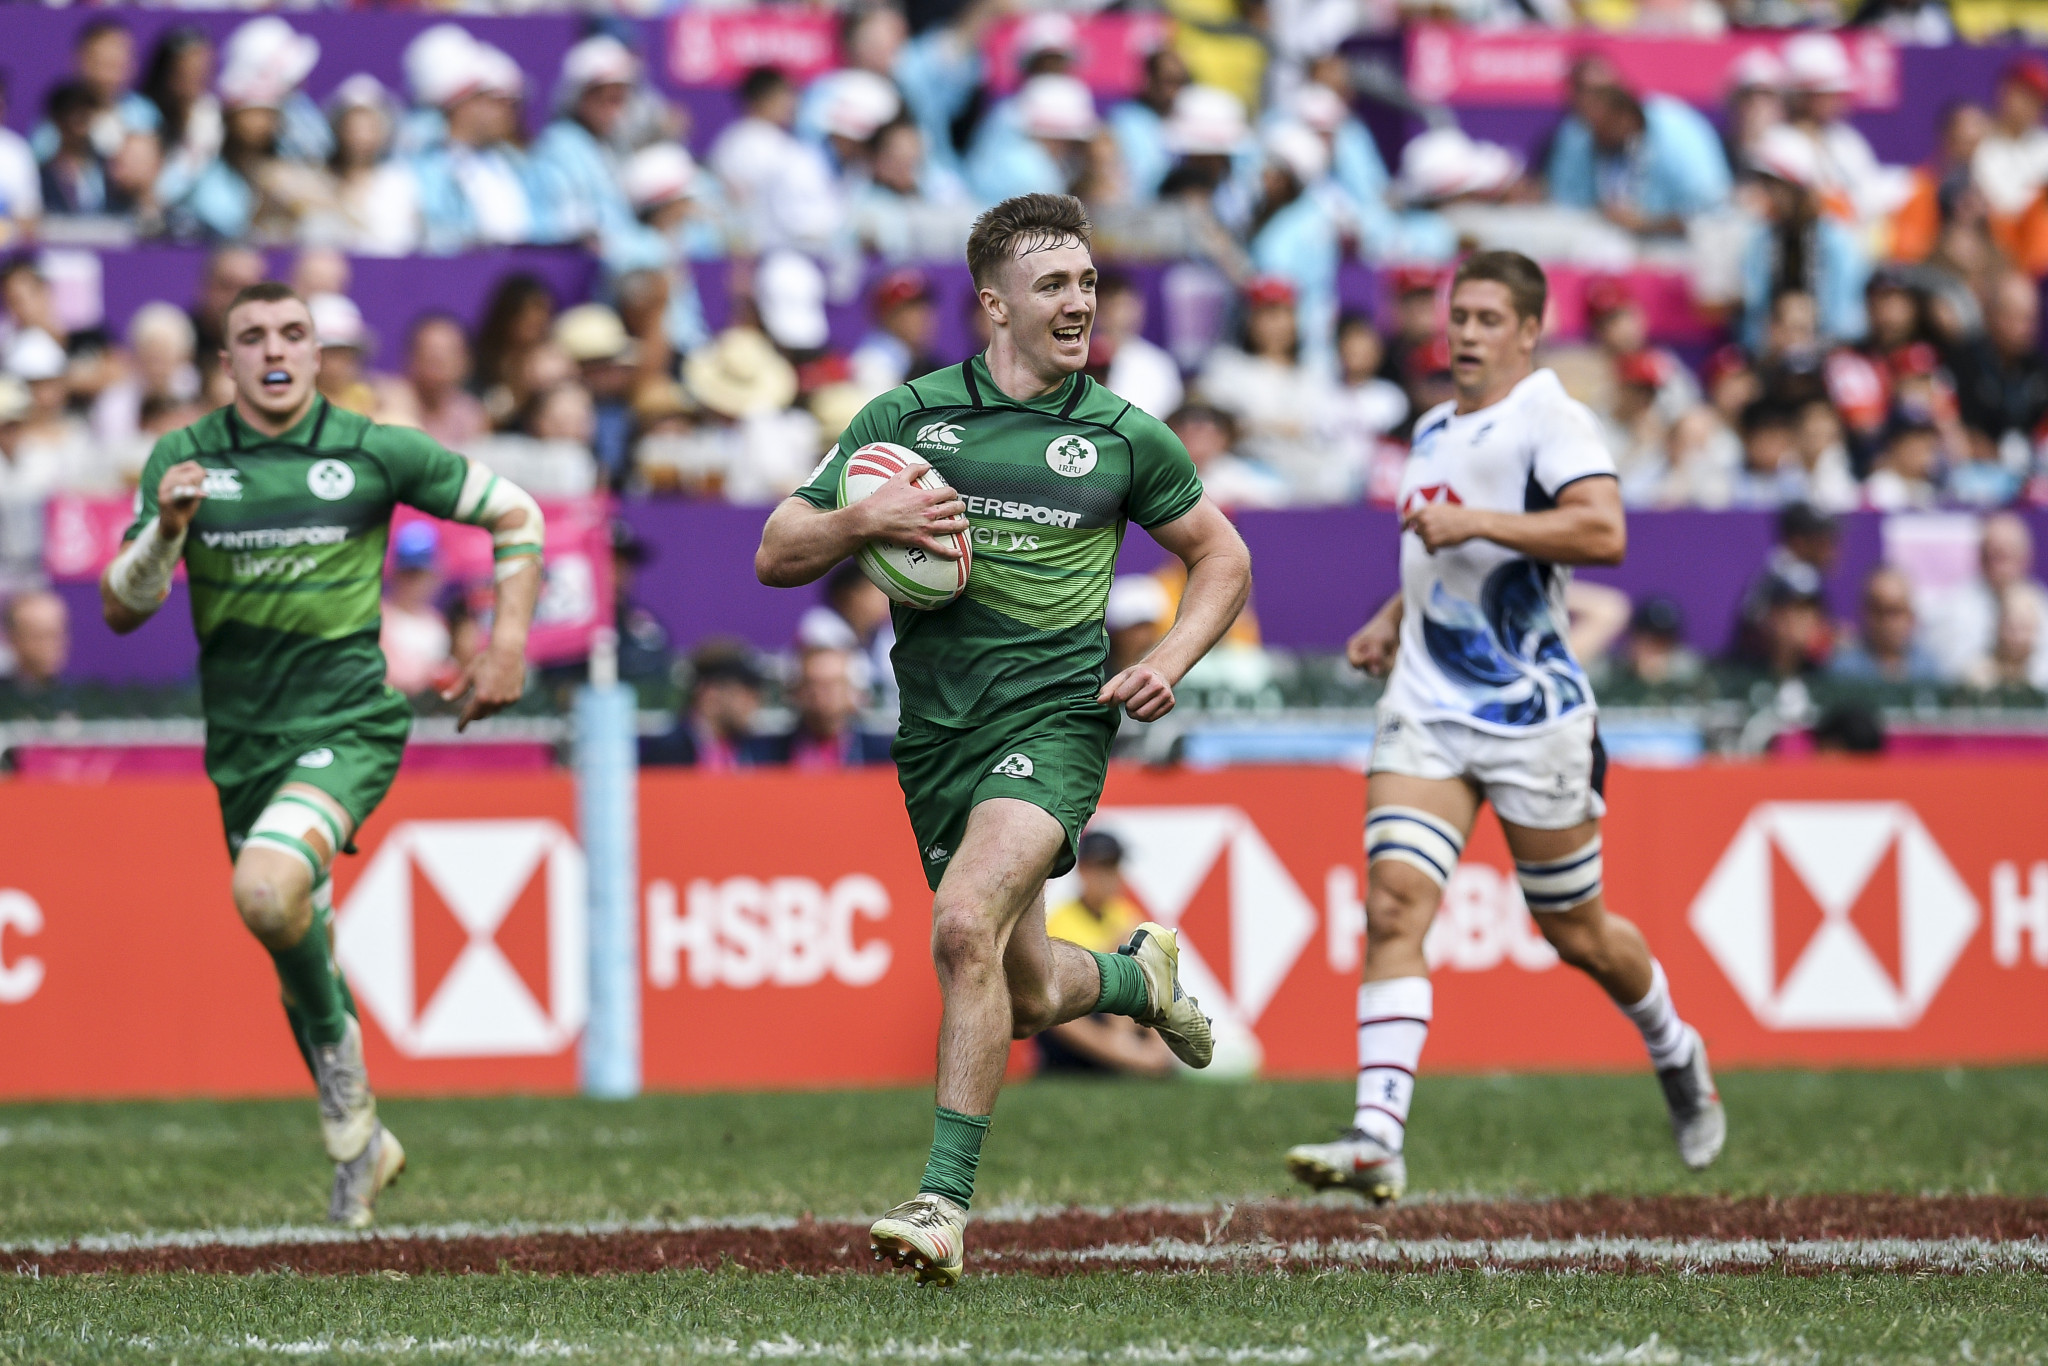 Three wins apiece for Samoa and Ireland at Olympic rugby sevens qualifier